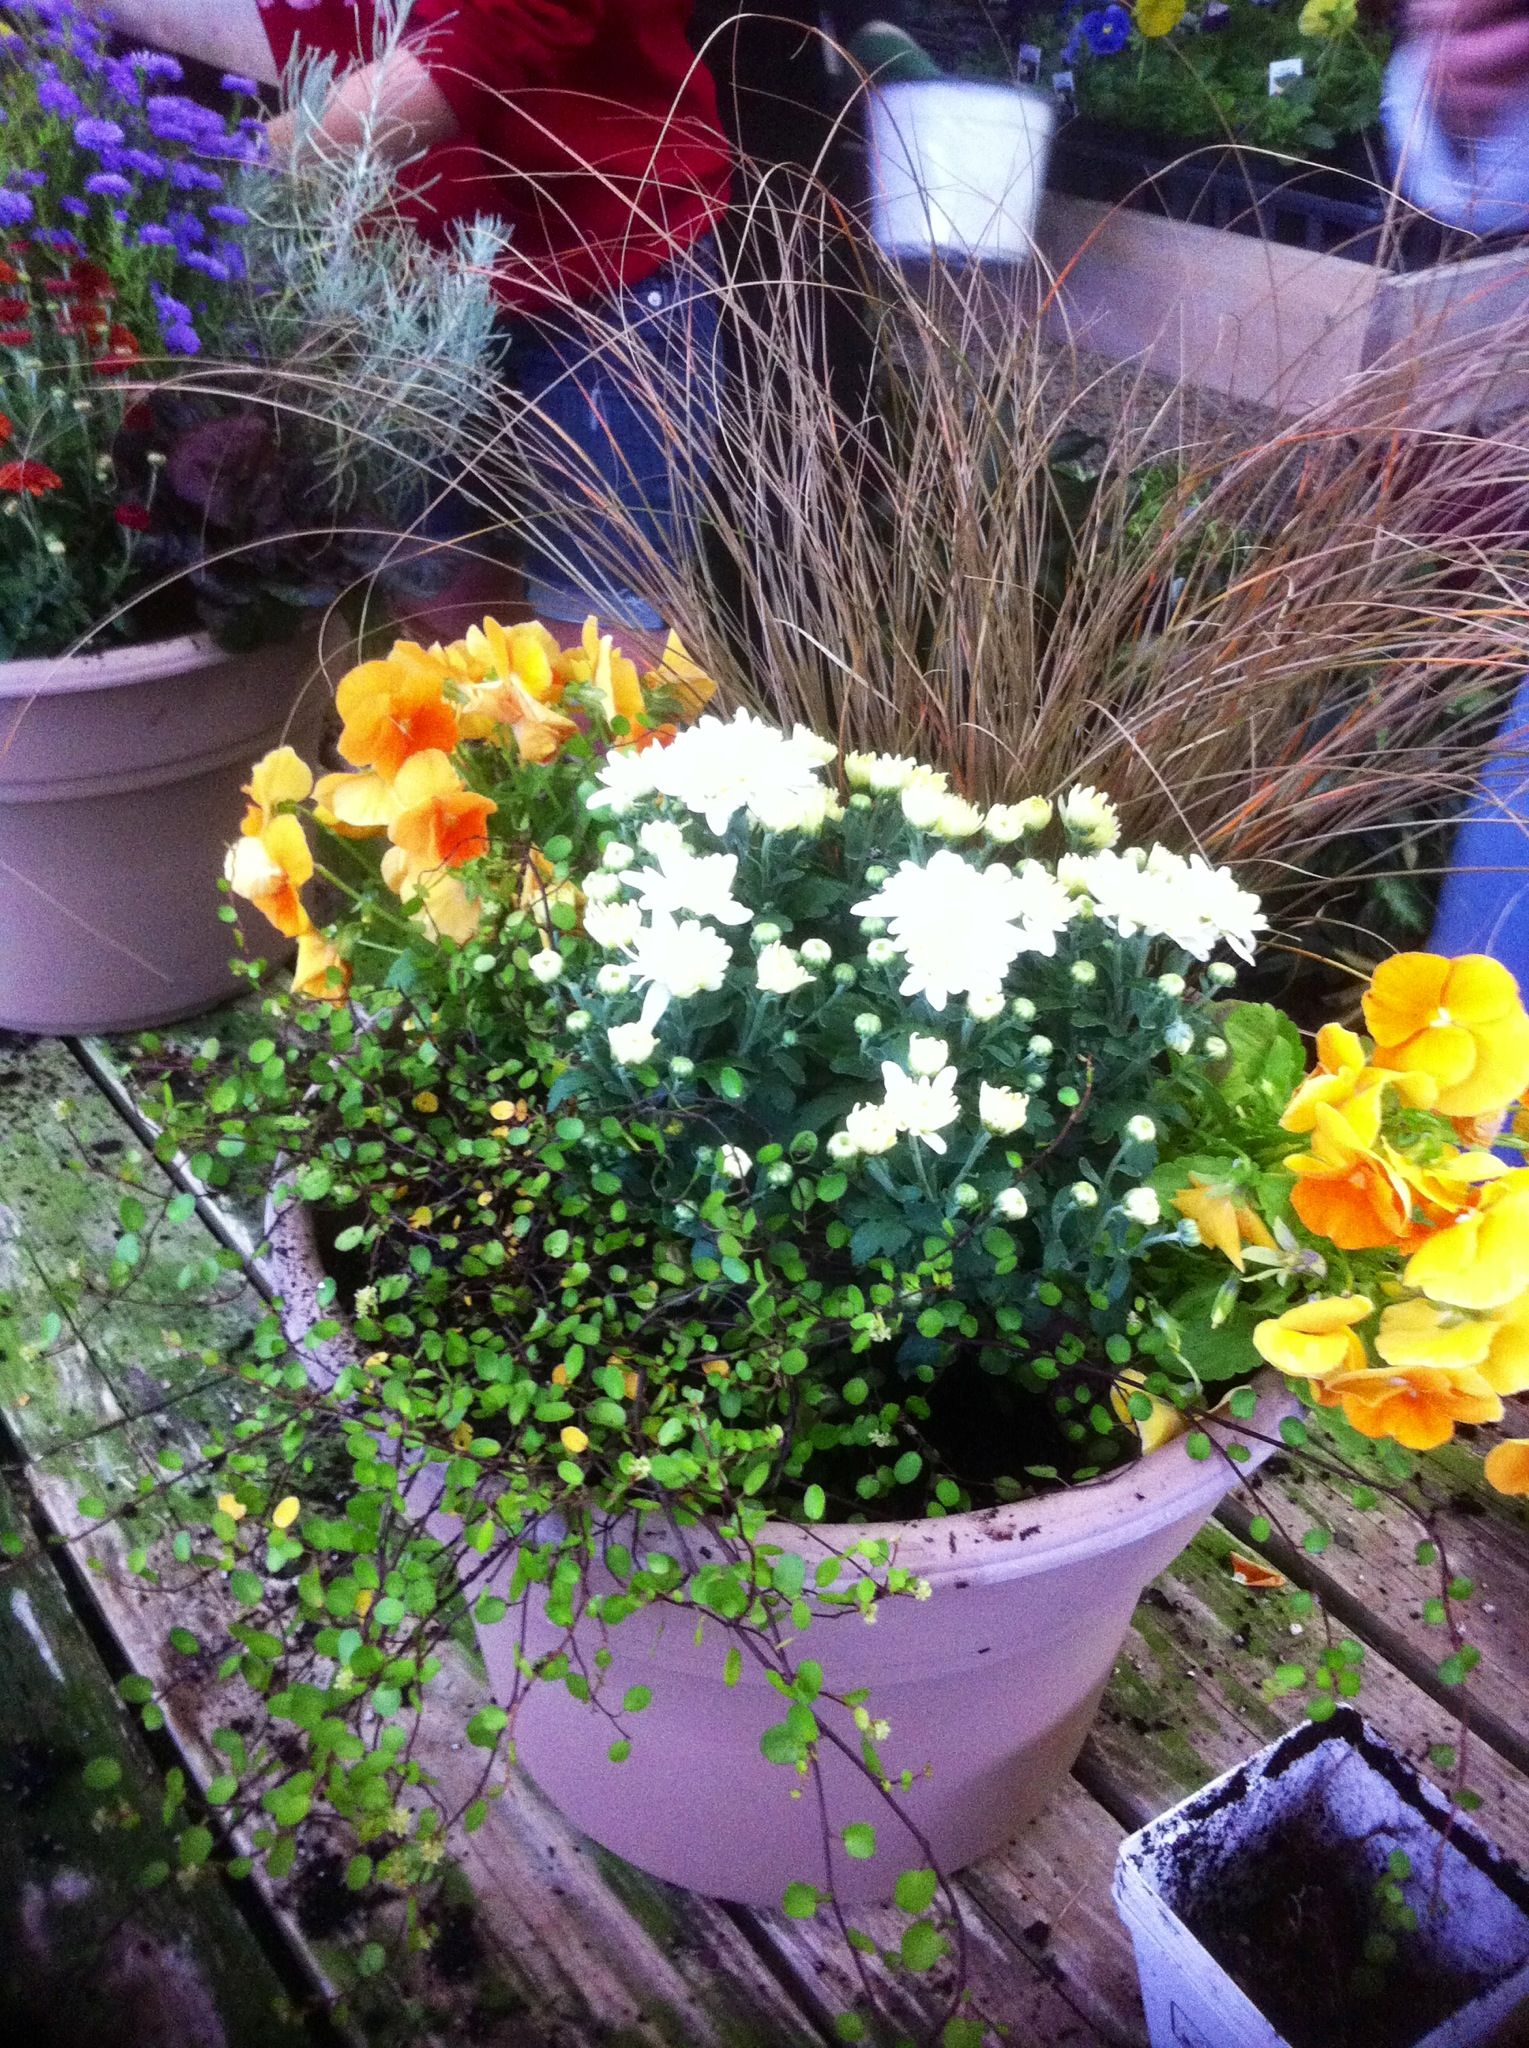 For Container Gardening, Follow The Spillers, Fillers And Thrillers Model